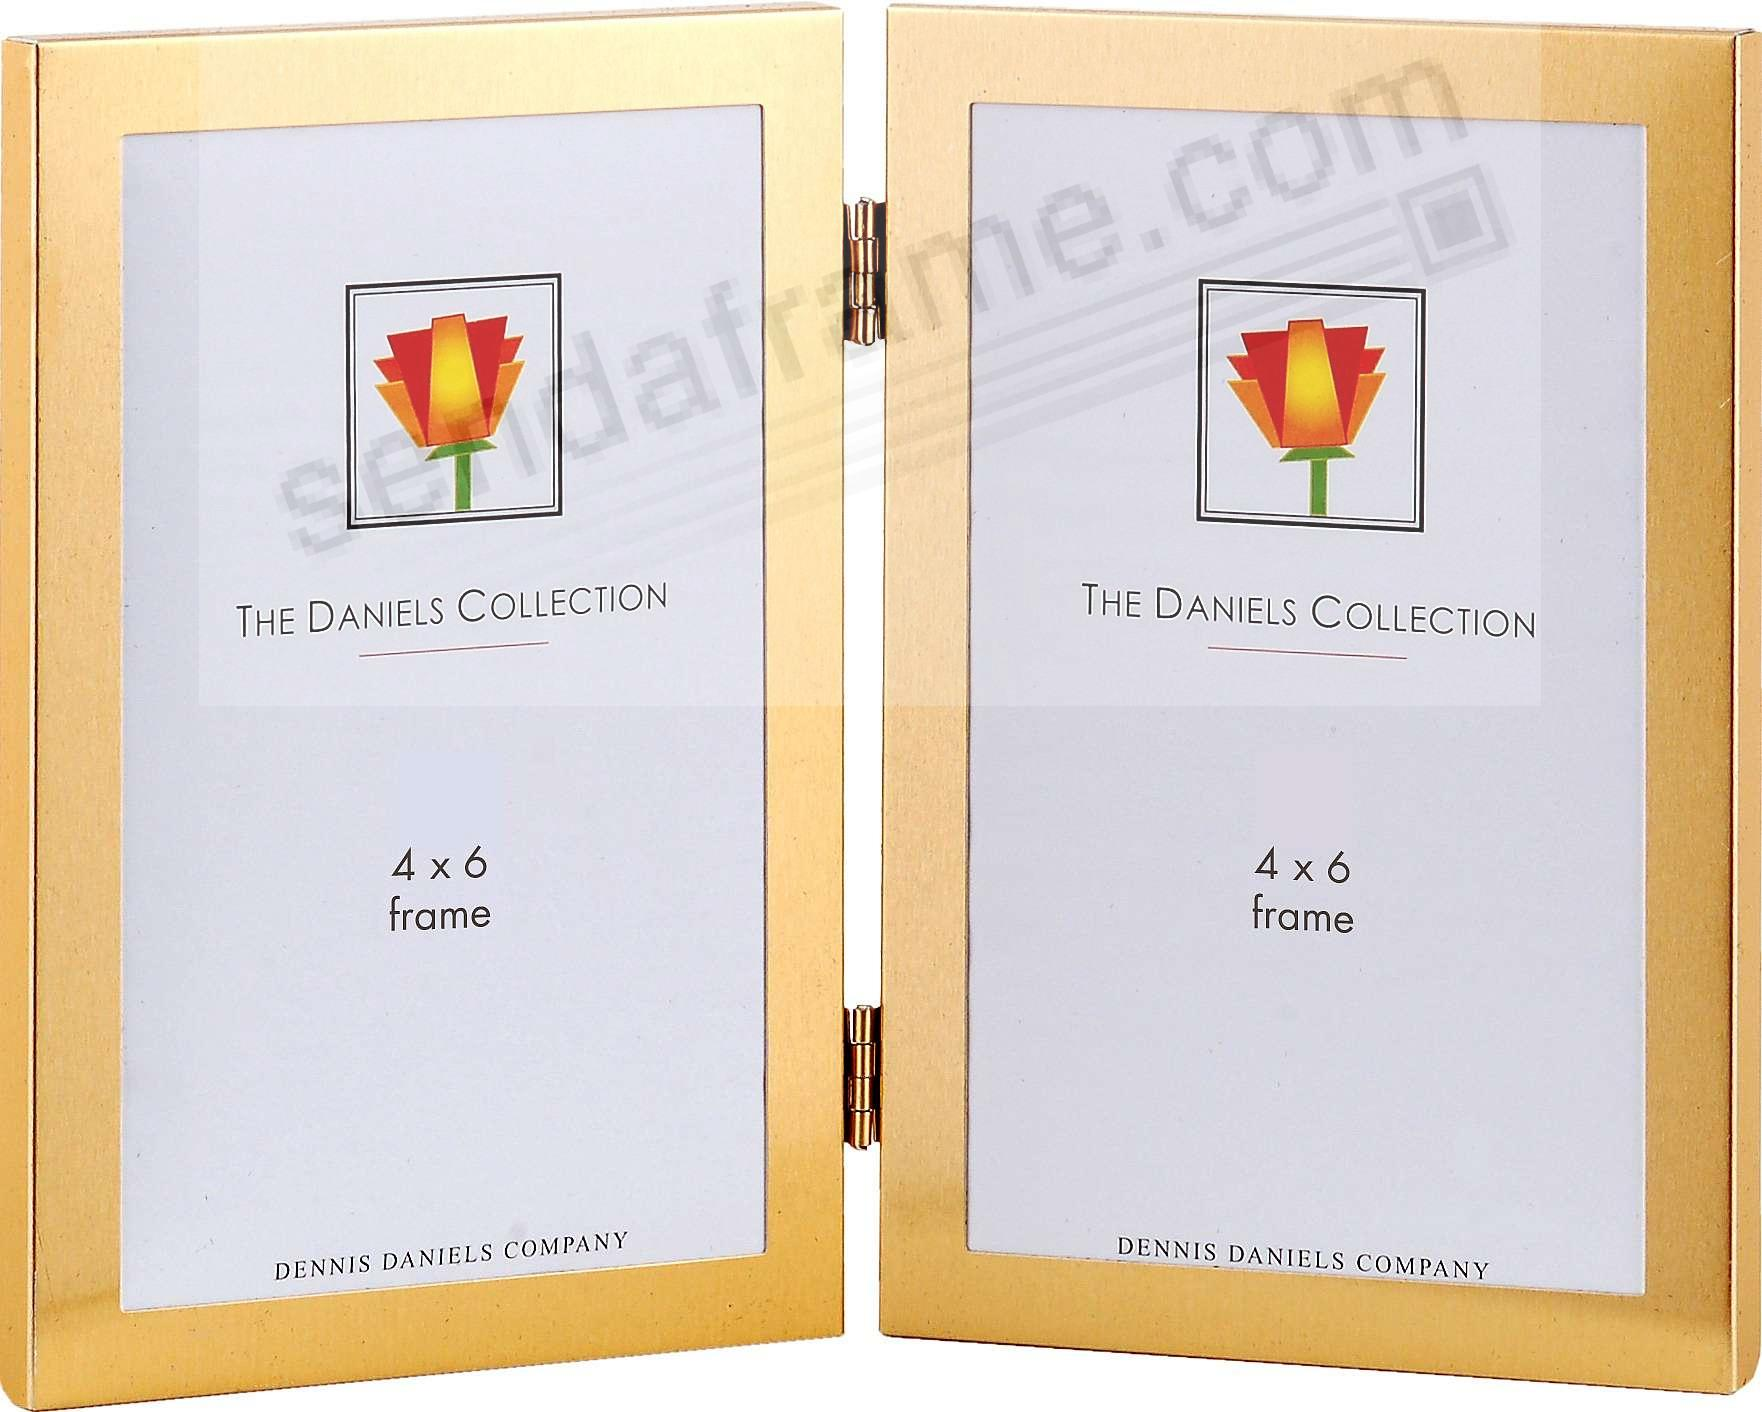 Golden Aluminum 4x6 hinged by Dennis Daniels®